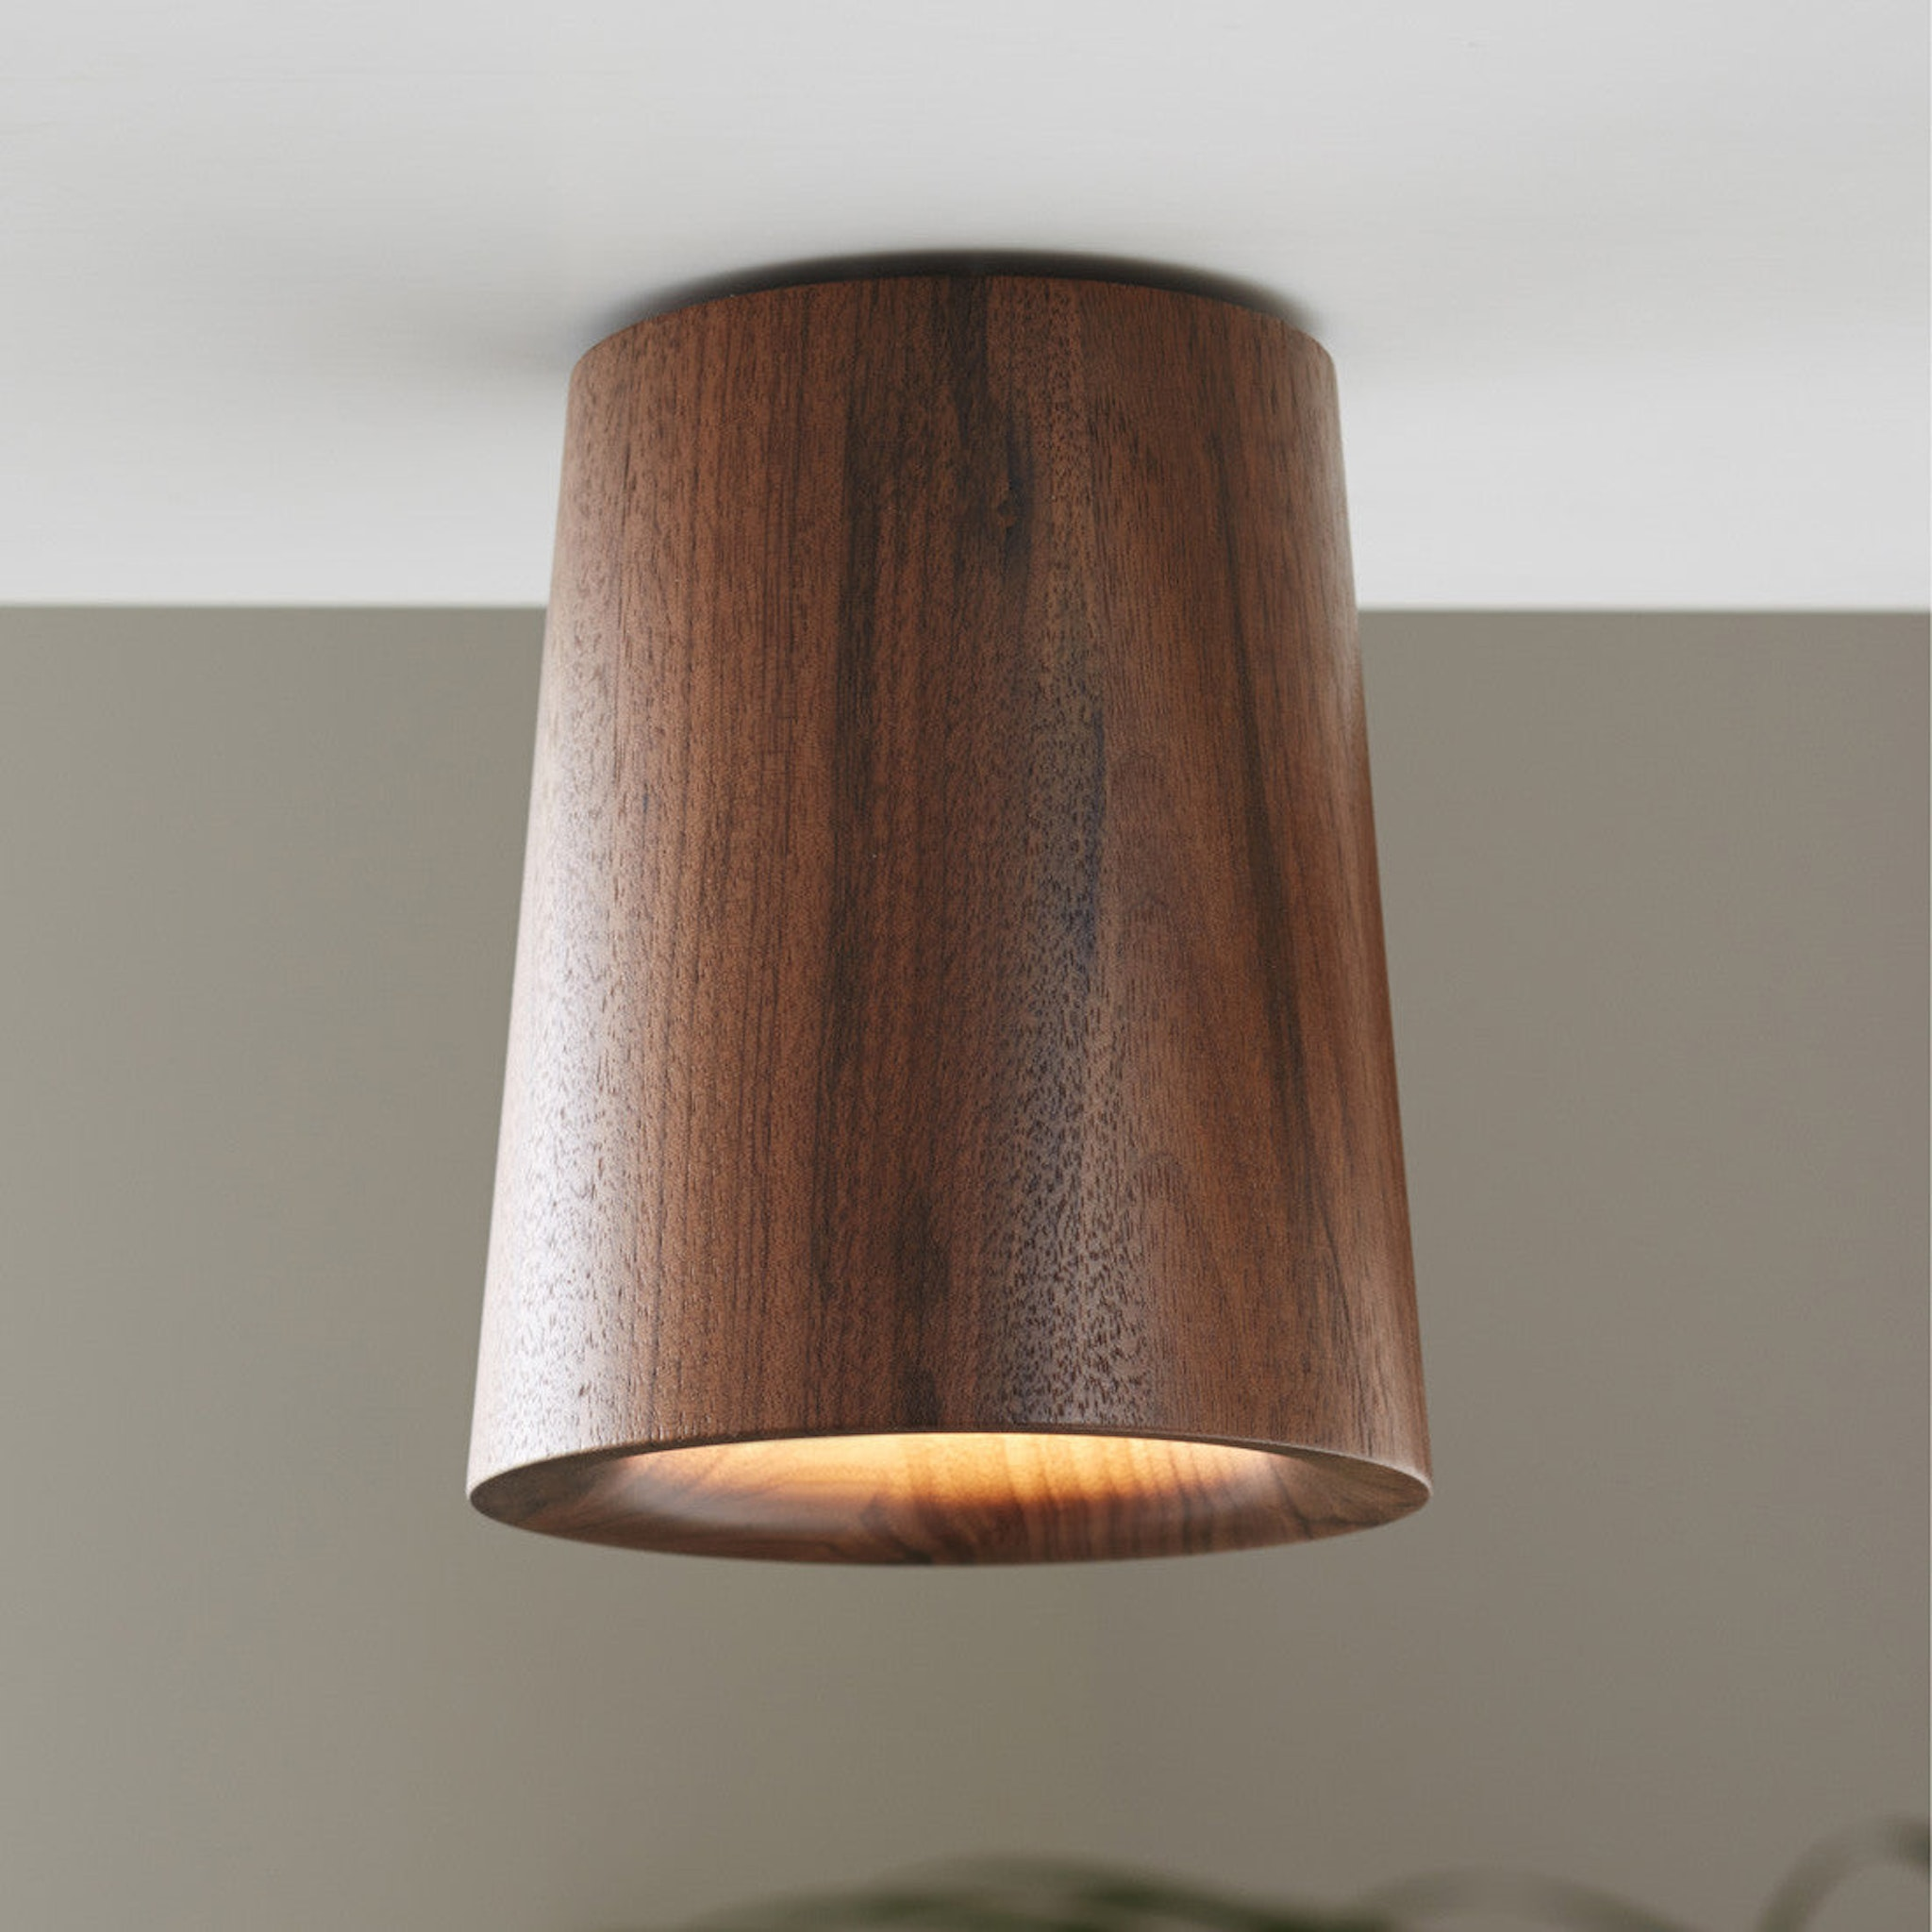 Solid Downlight Cone - Wood by Terence Woodgate